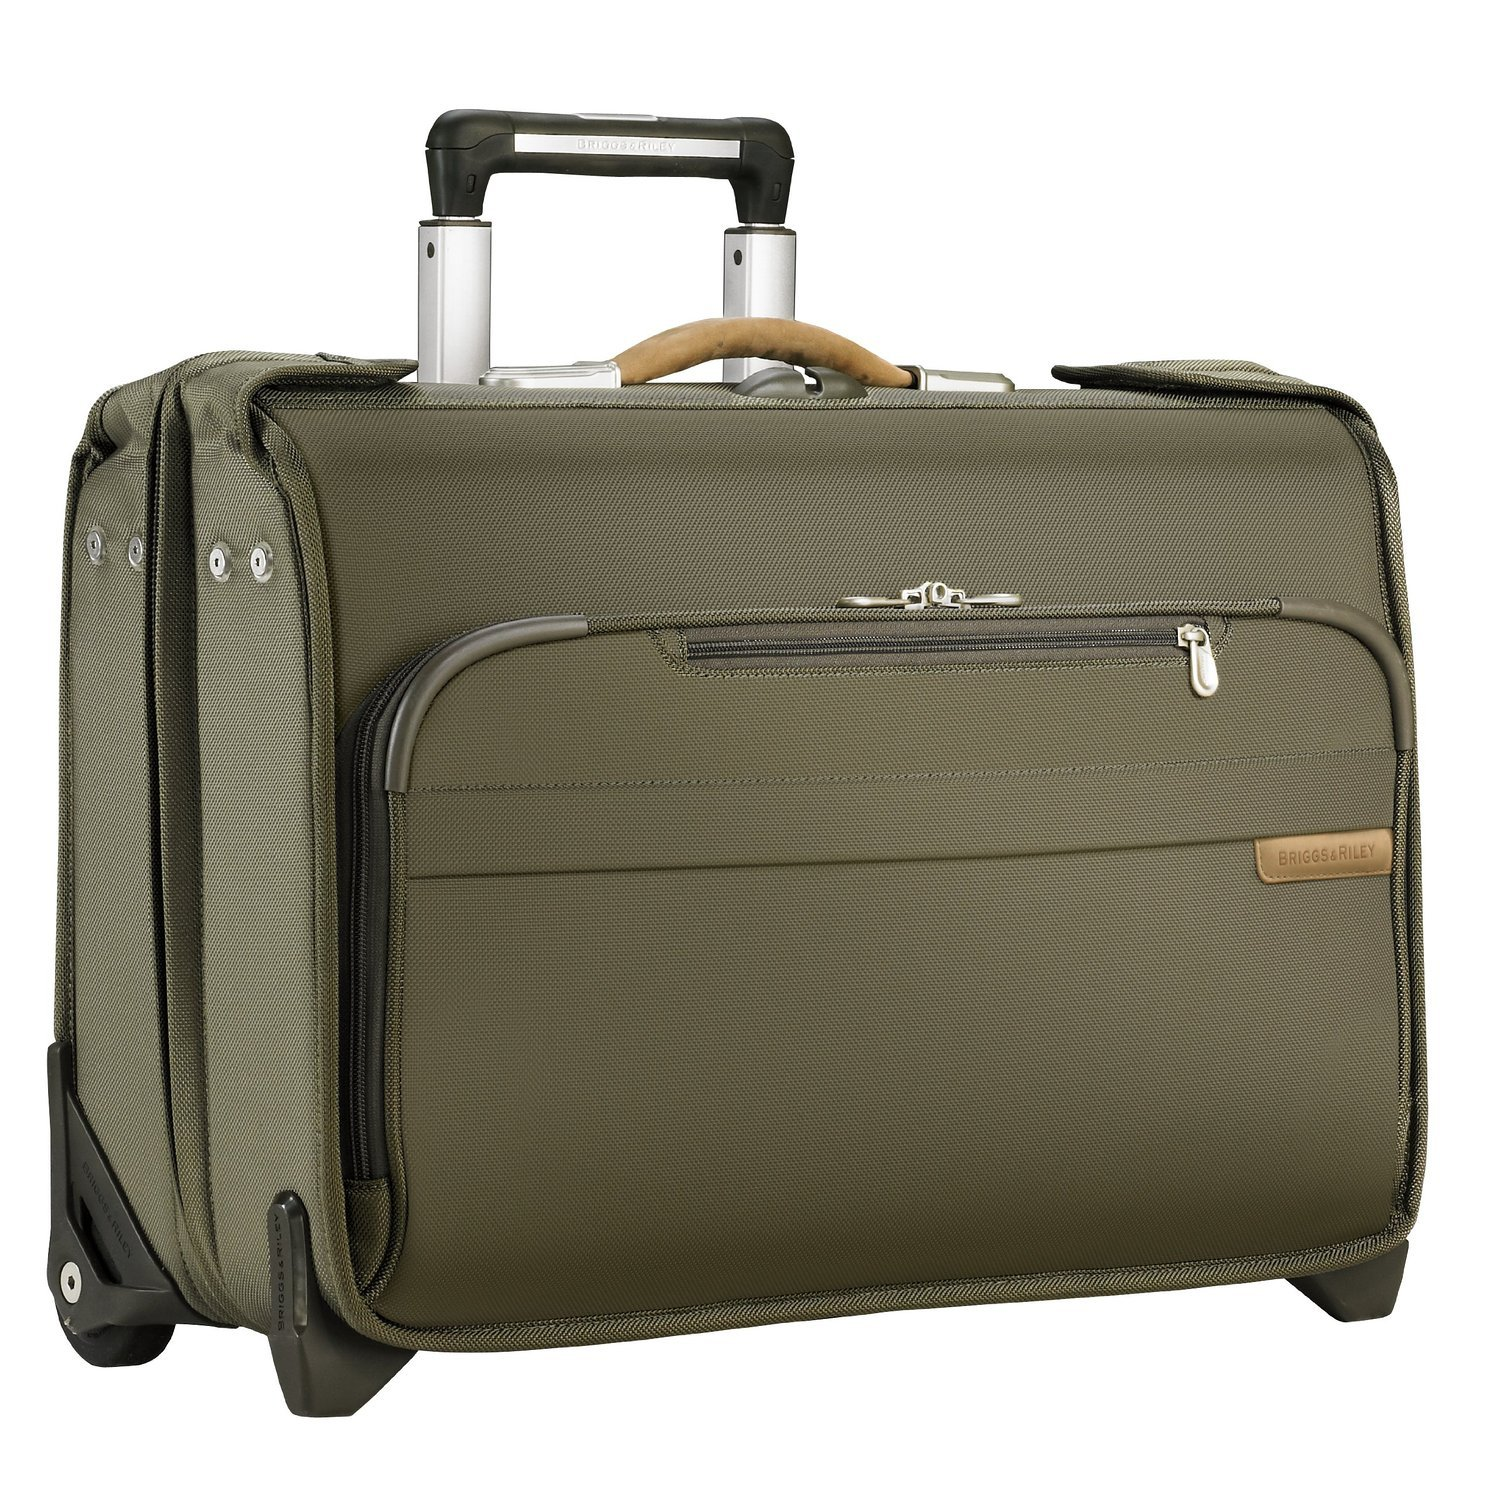 Briggs & Riley Luggage Carry-On Wheeled Garment Bag